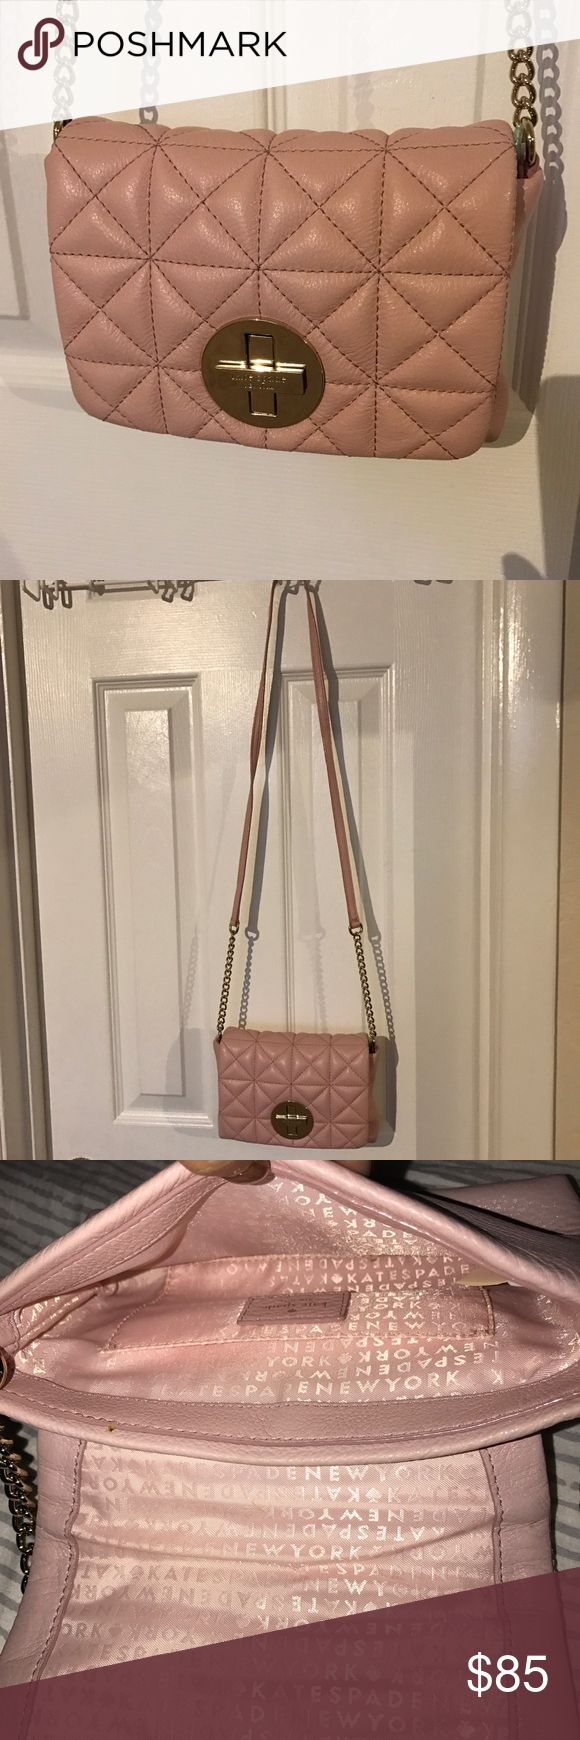 Pink Quilted Kate Spate Cross Body Bag Perfect condition Kate spade crossbody. Slightly used. Beautiful pale pink. Golden hardware and quilted detailing. Natural scratching on the clasp from opening the bag kate spade Bags Crossbody Bags